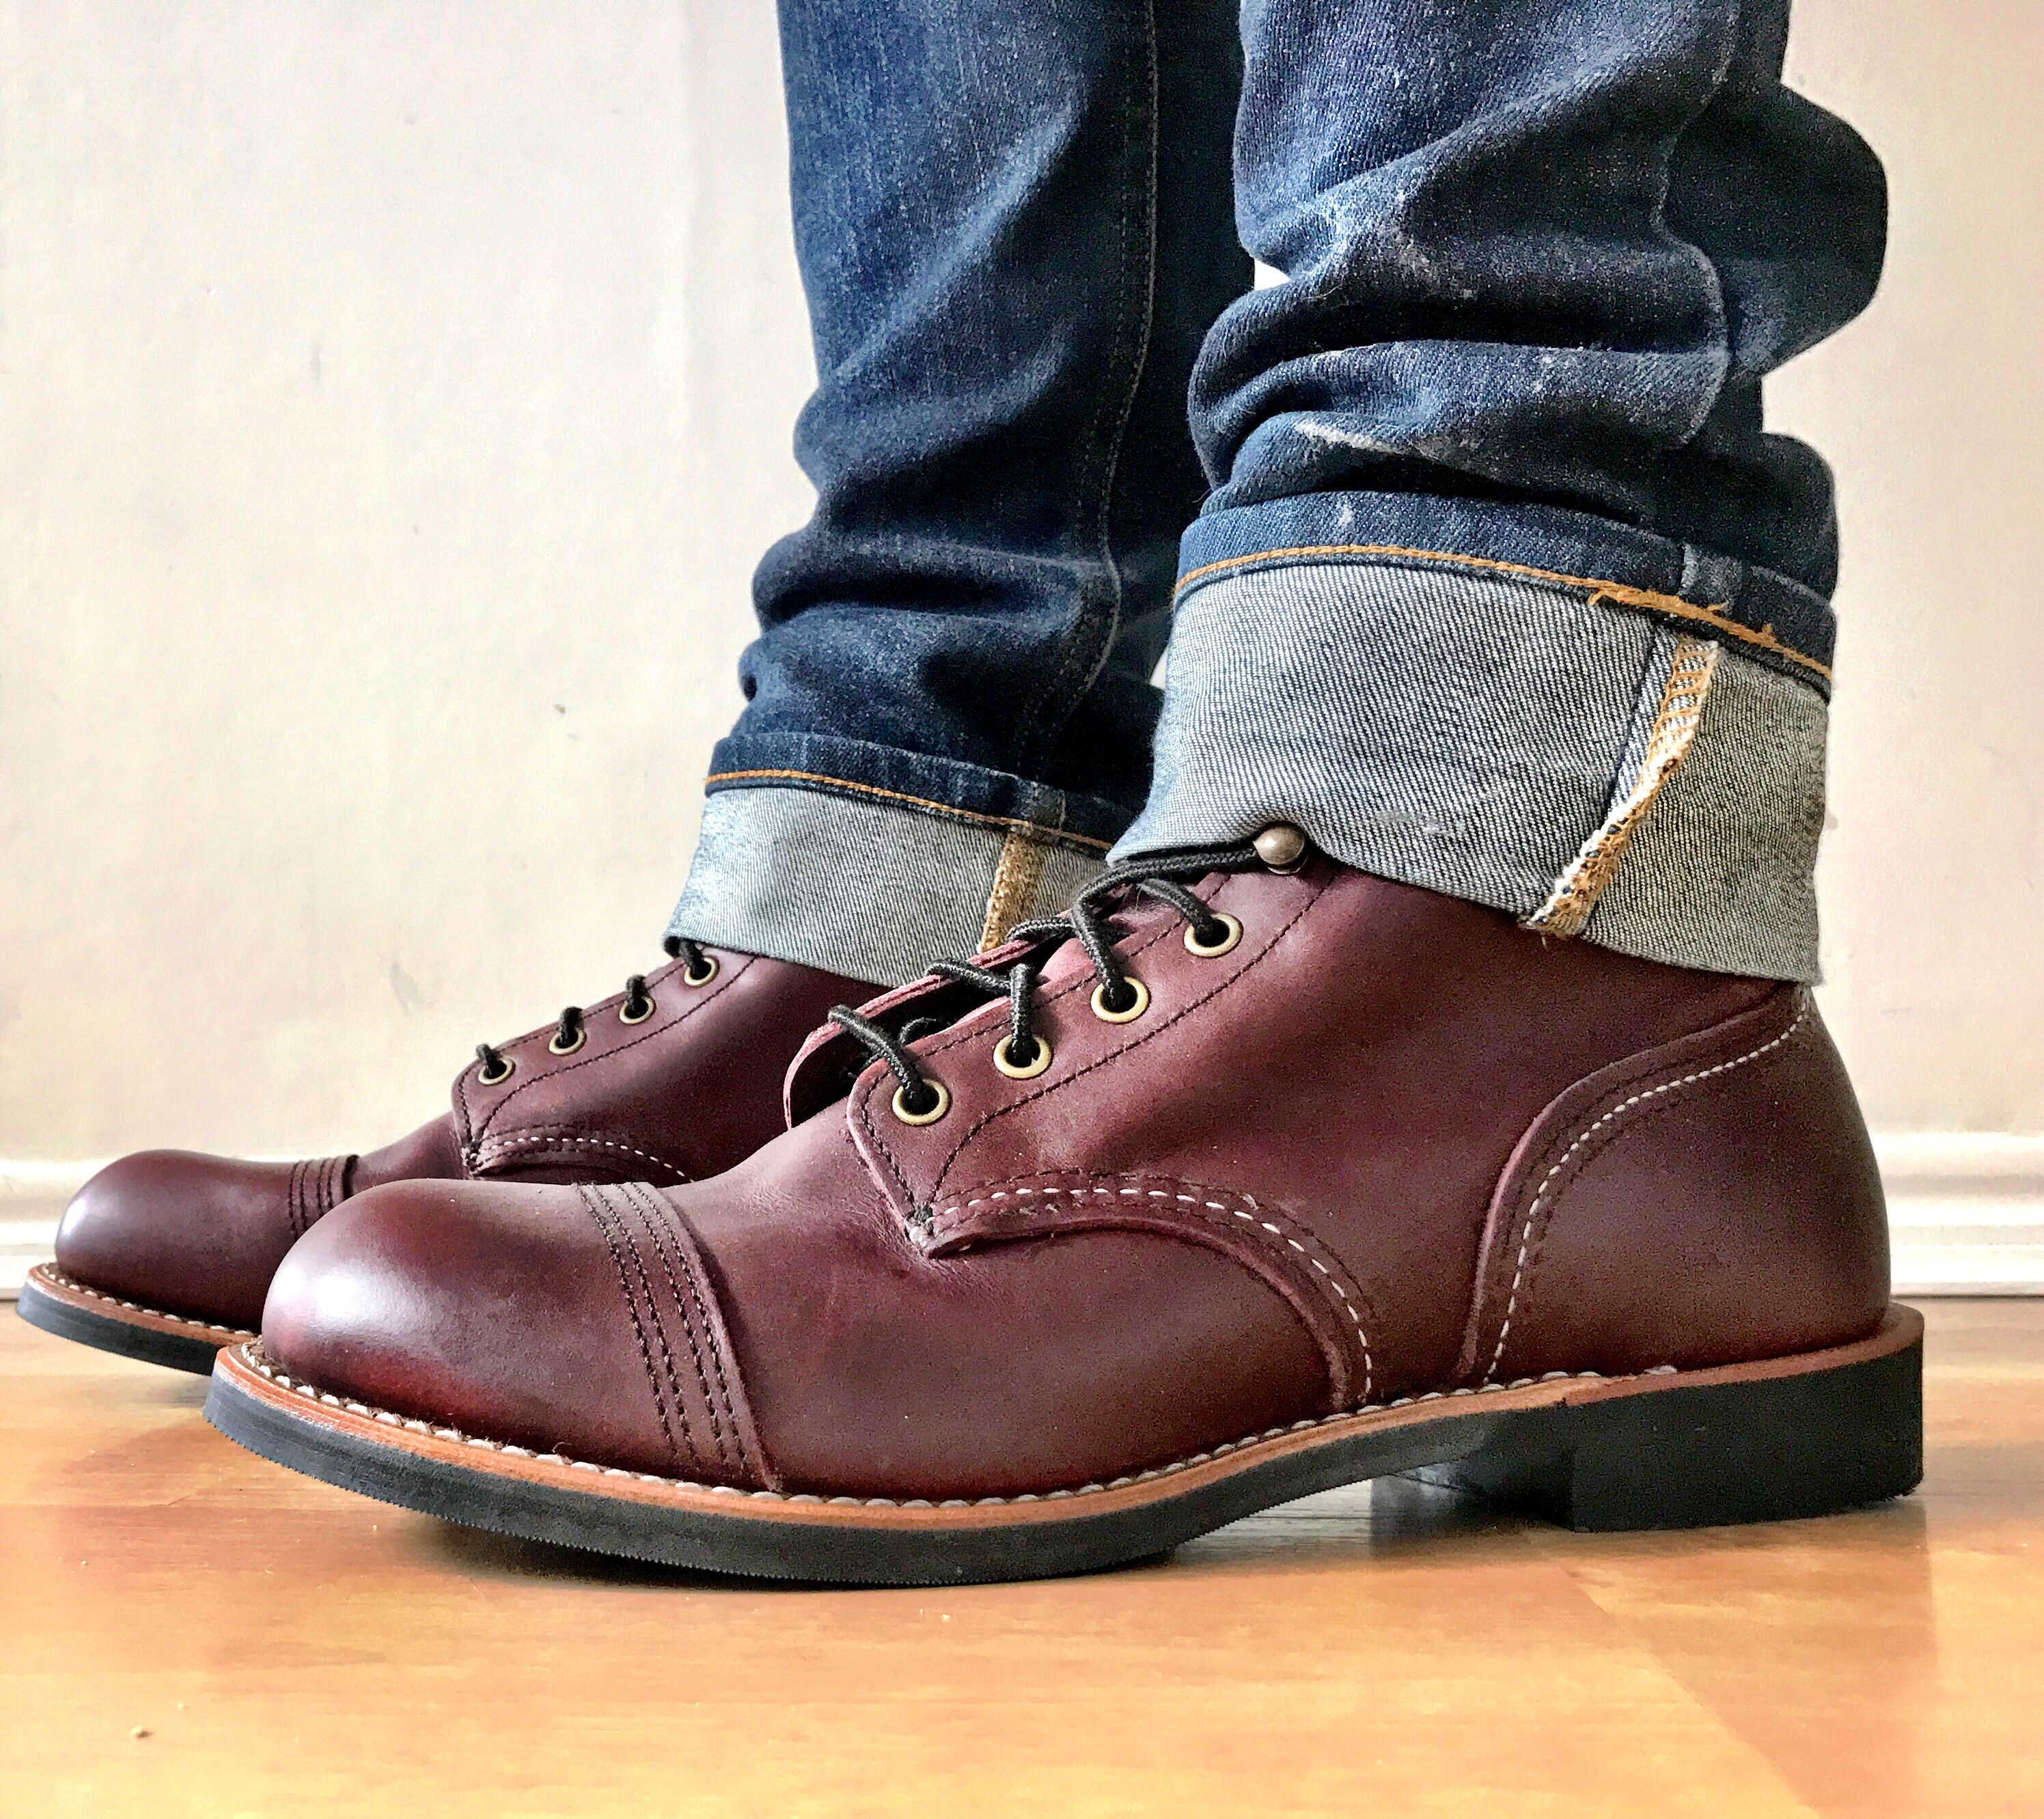 Red Wing Iron Rangers 8119 Oxblood Day 1 Attire Red